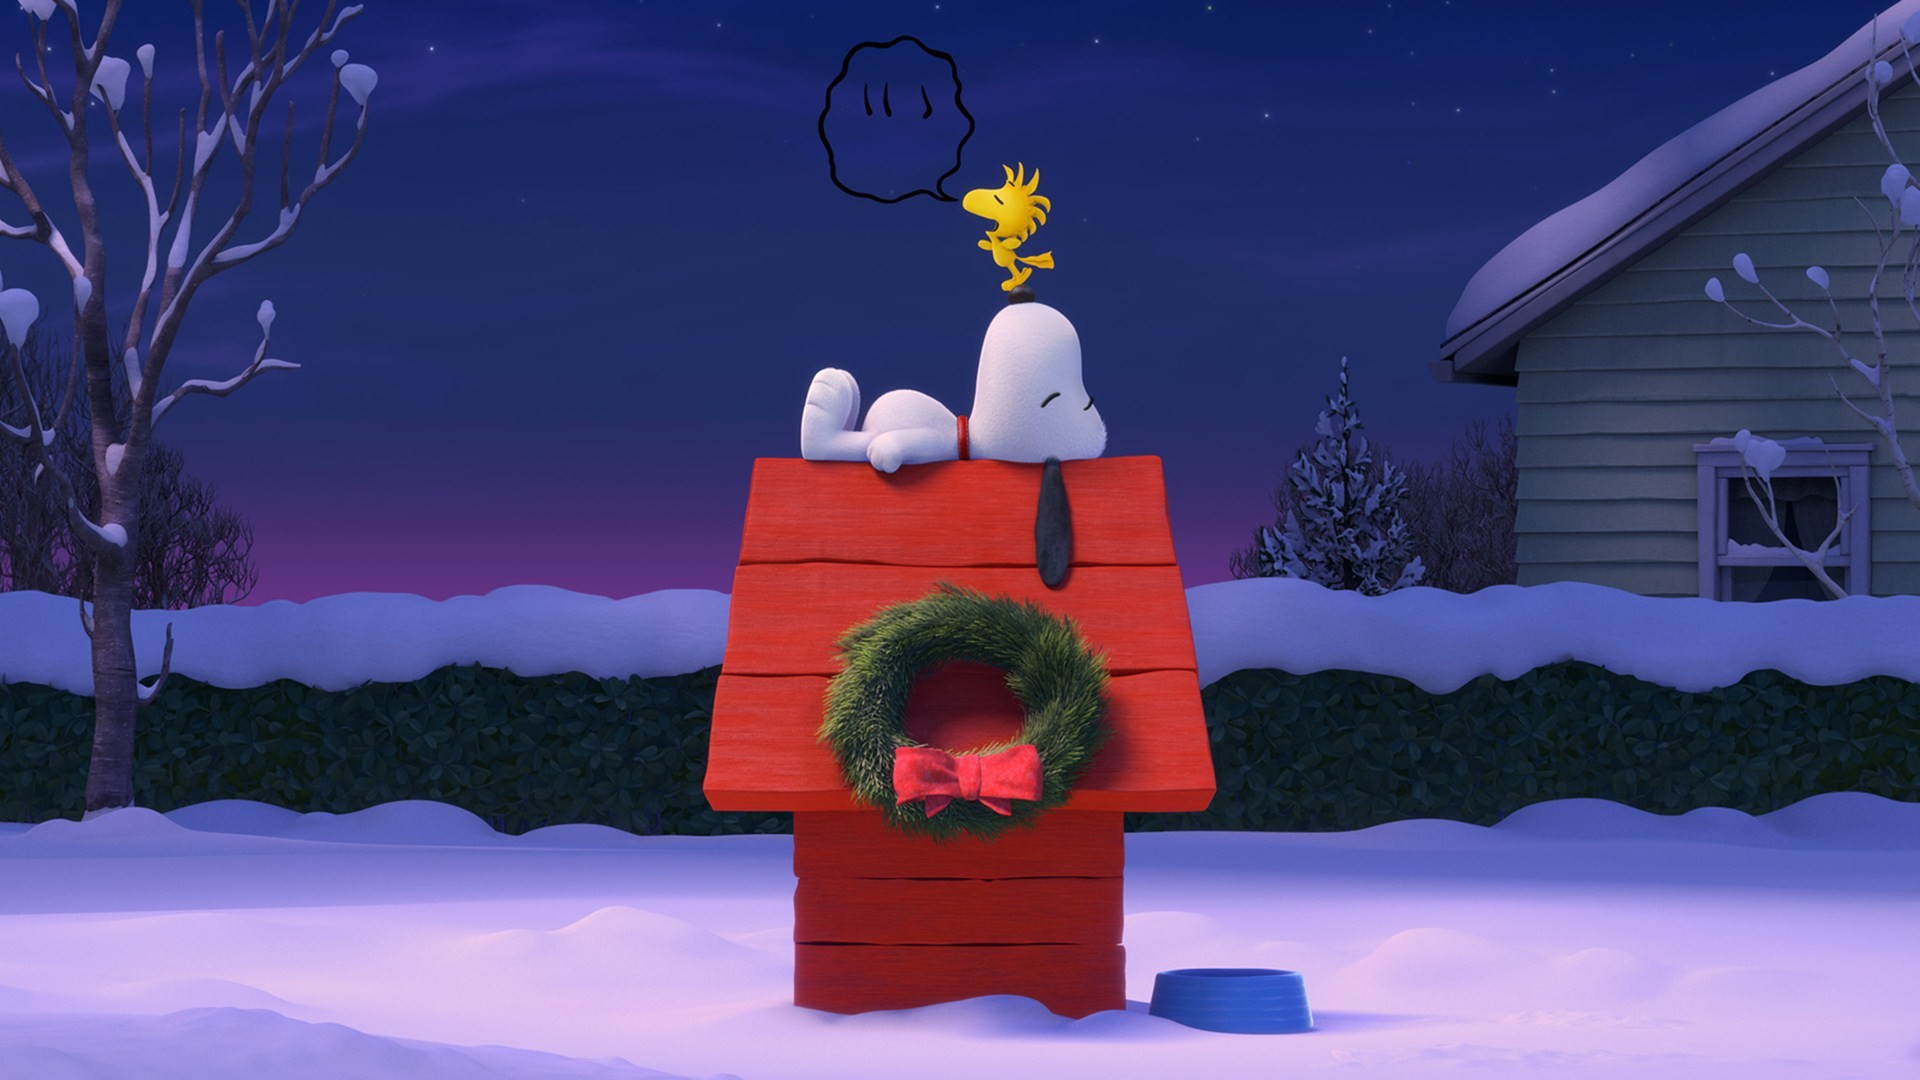 Download Snoopy And Charlie Brown The Peanuts HD Wallpaper. Search .